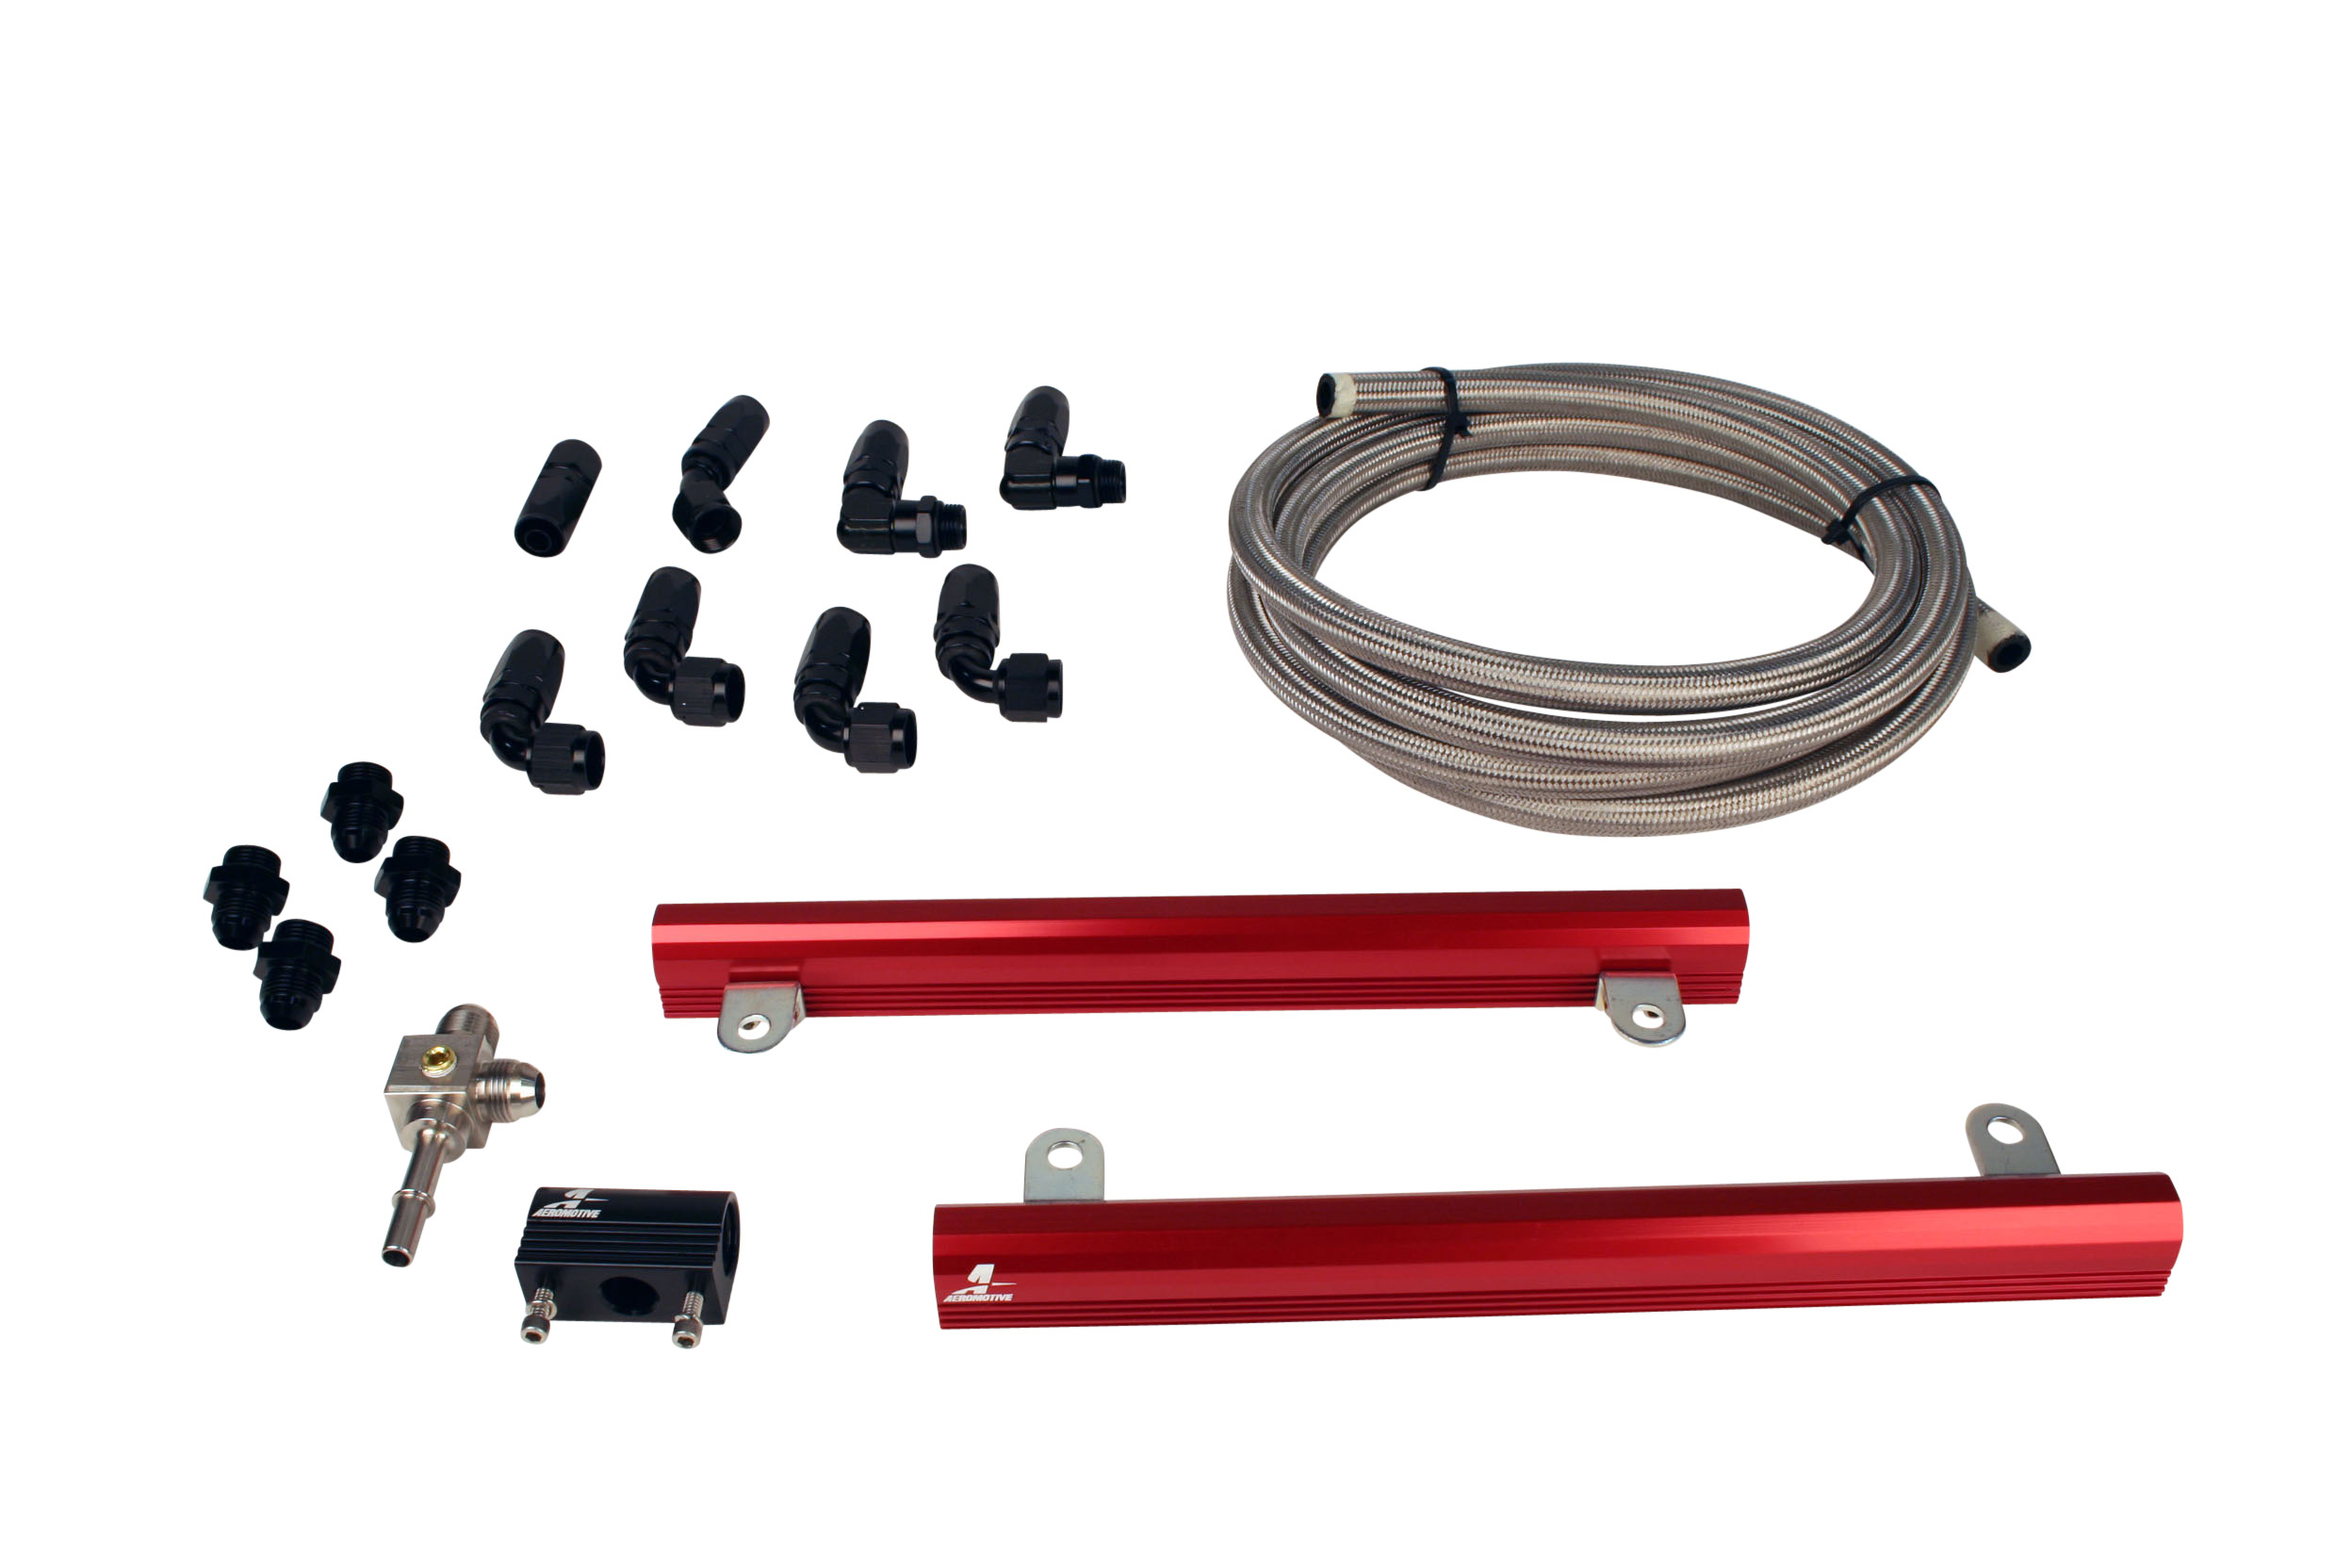 Aeromotive 07 Ford 5.4L GT500 Mustang Fuel Rail Kit - Aeromotive 14145